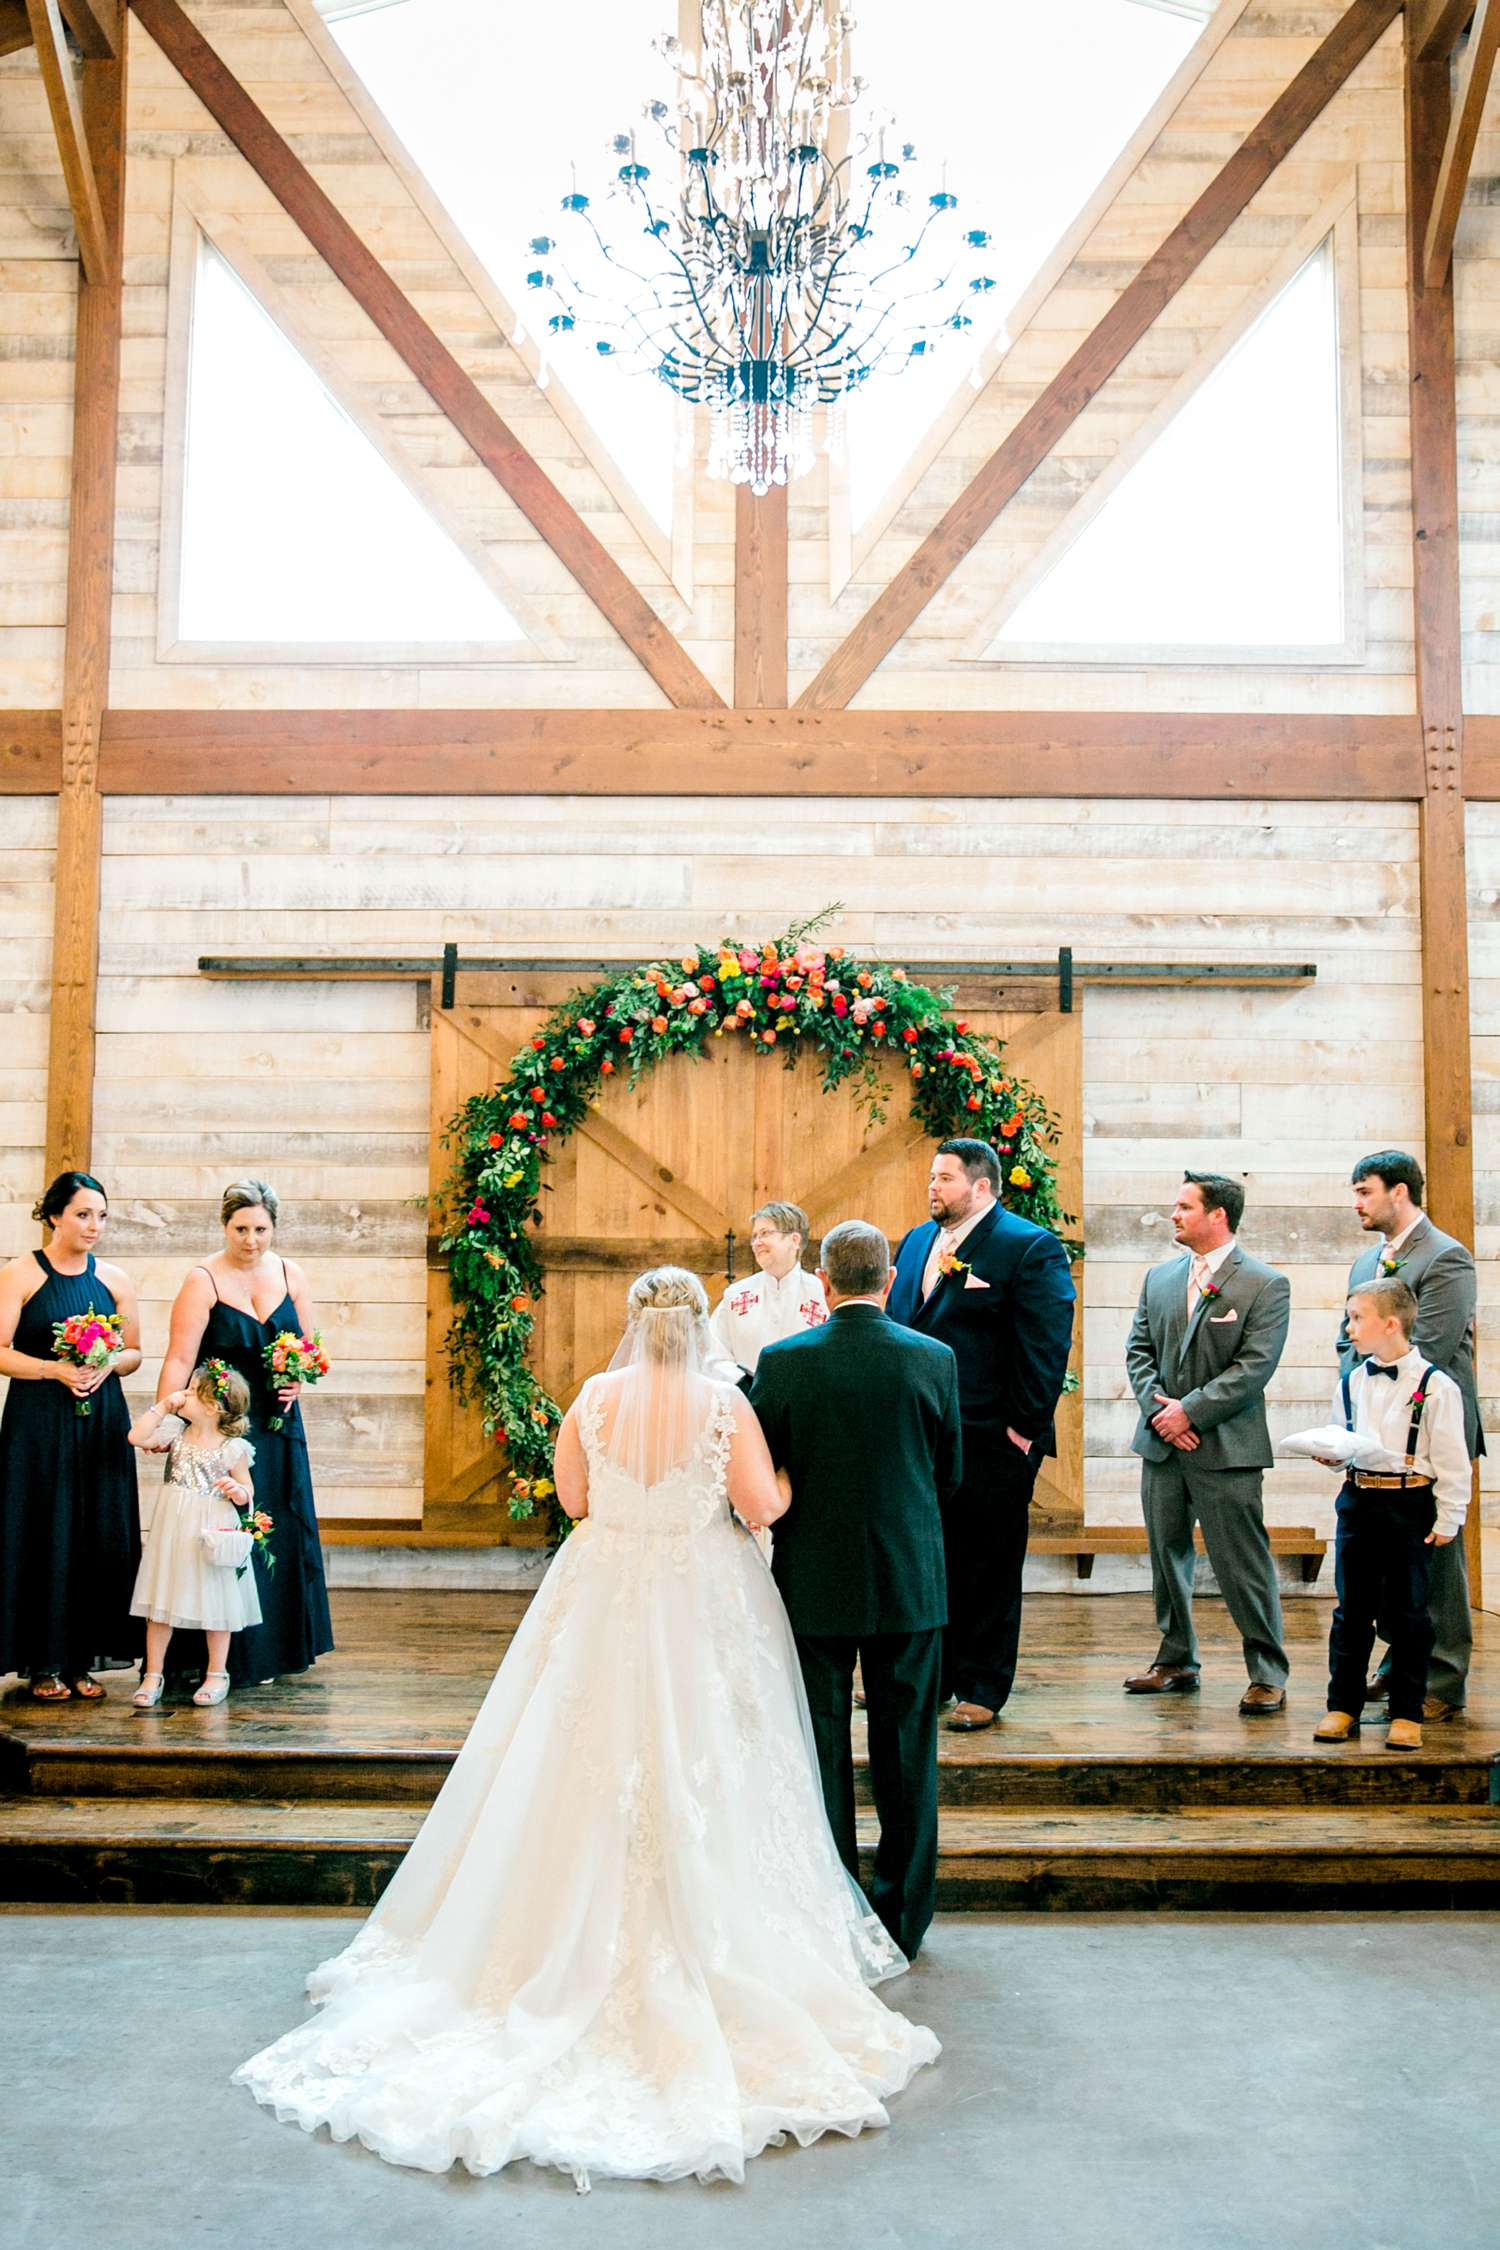 TIMMI+JORDAN_IRVINE_EBERLEY_BROOKS_EVENTS_ALLEEJ_WEDDINGS_0070.jpg